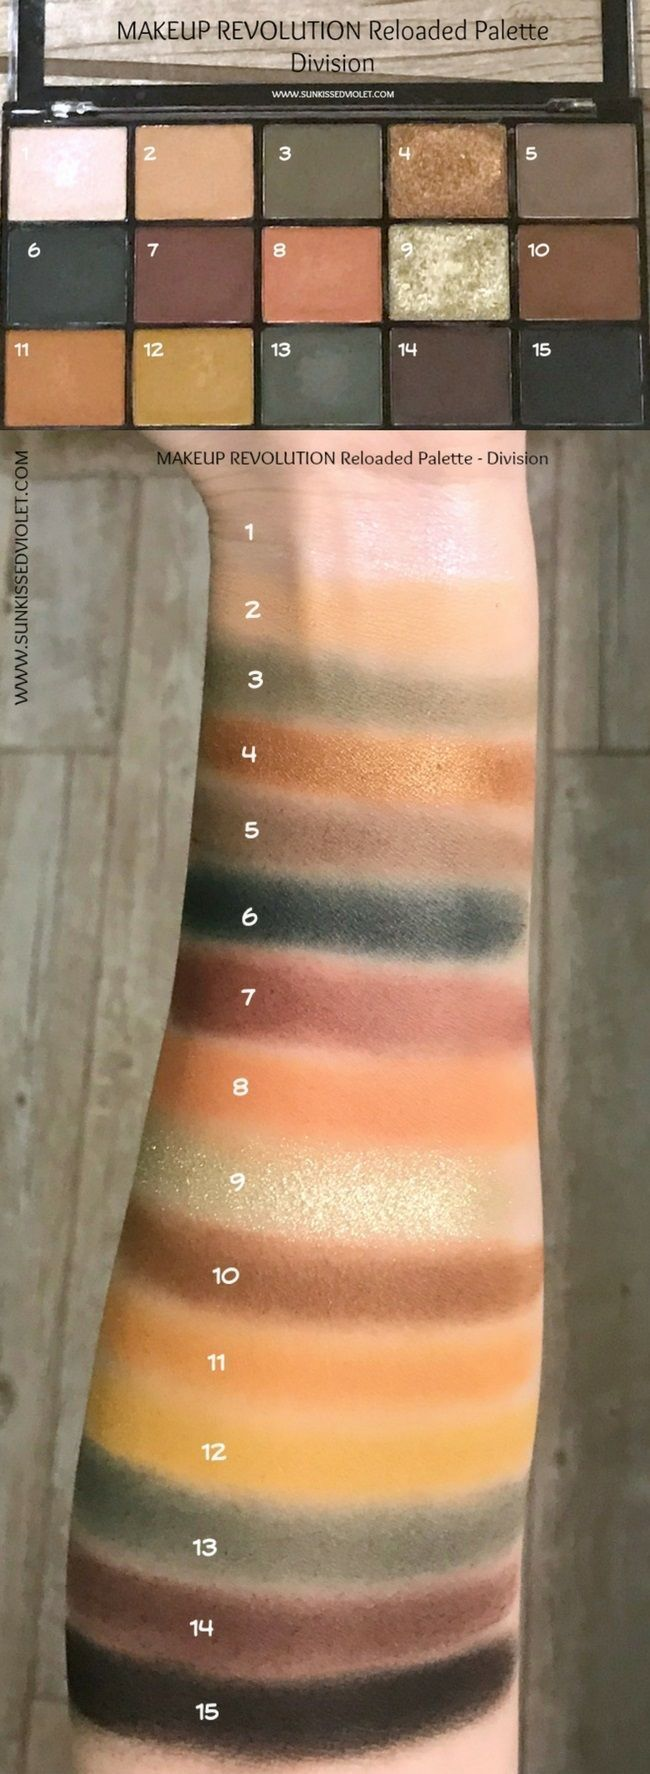 MAKEUP REVOLUTION Reloaded Palettes Swatches Review